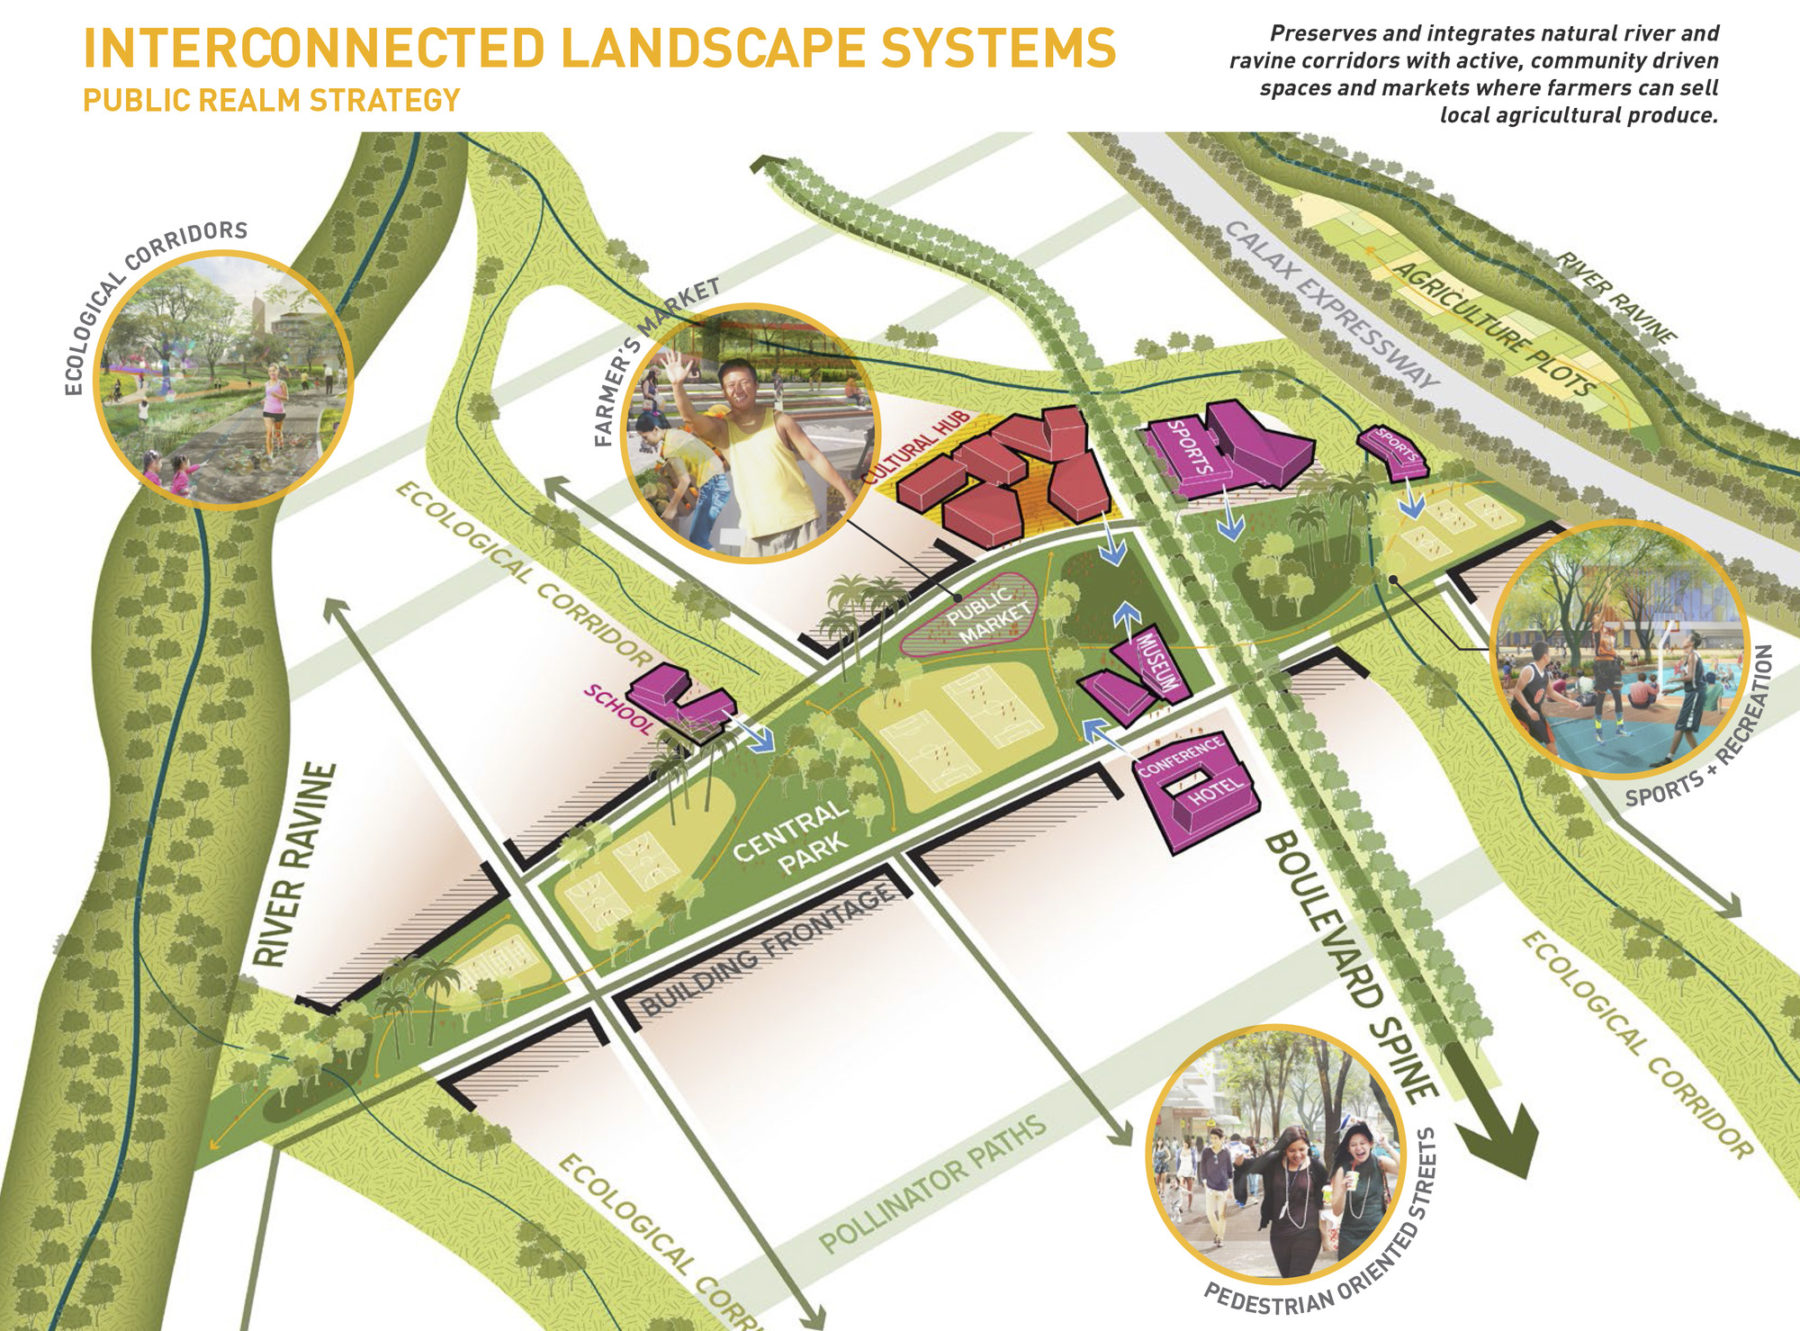 Graphic of interconnected landscape systems